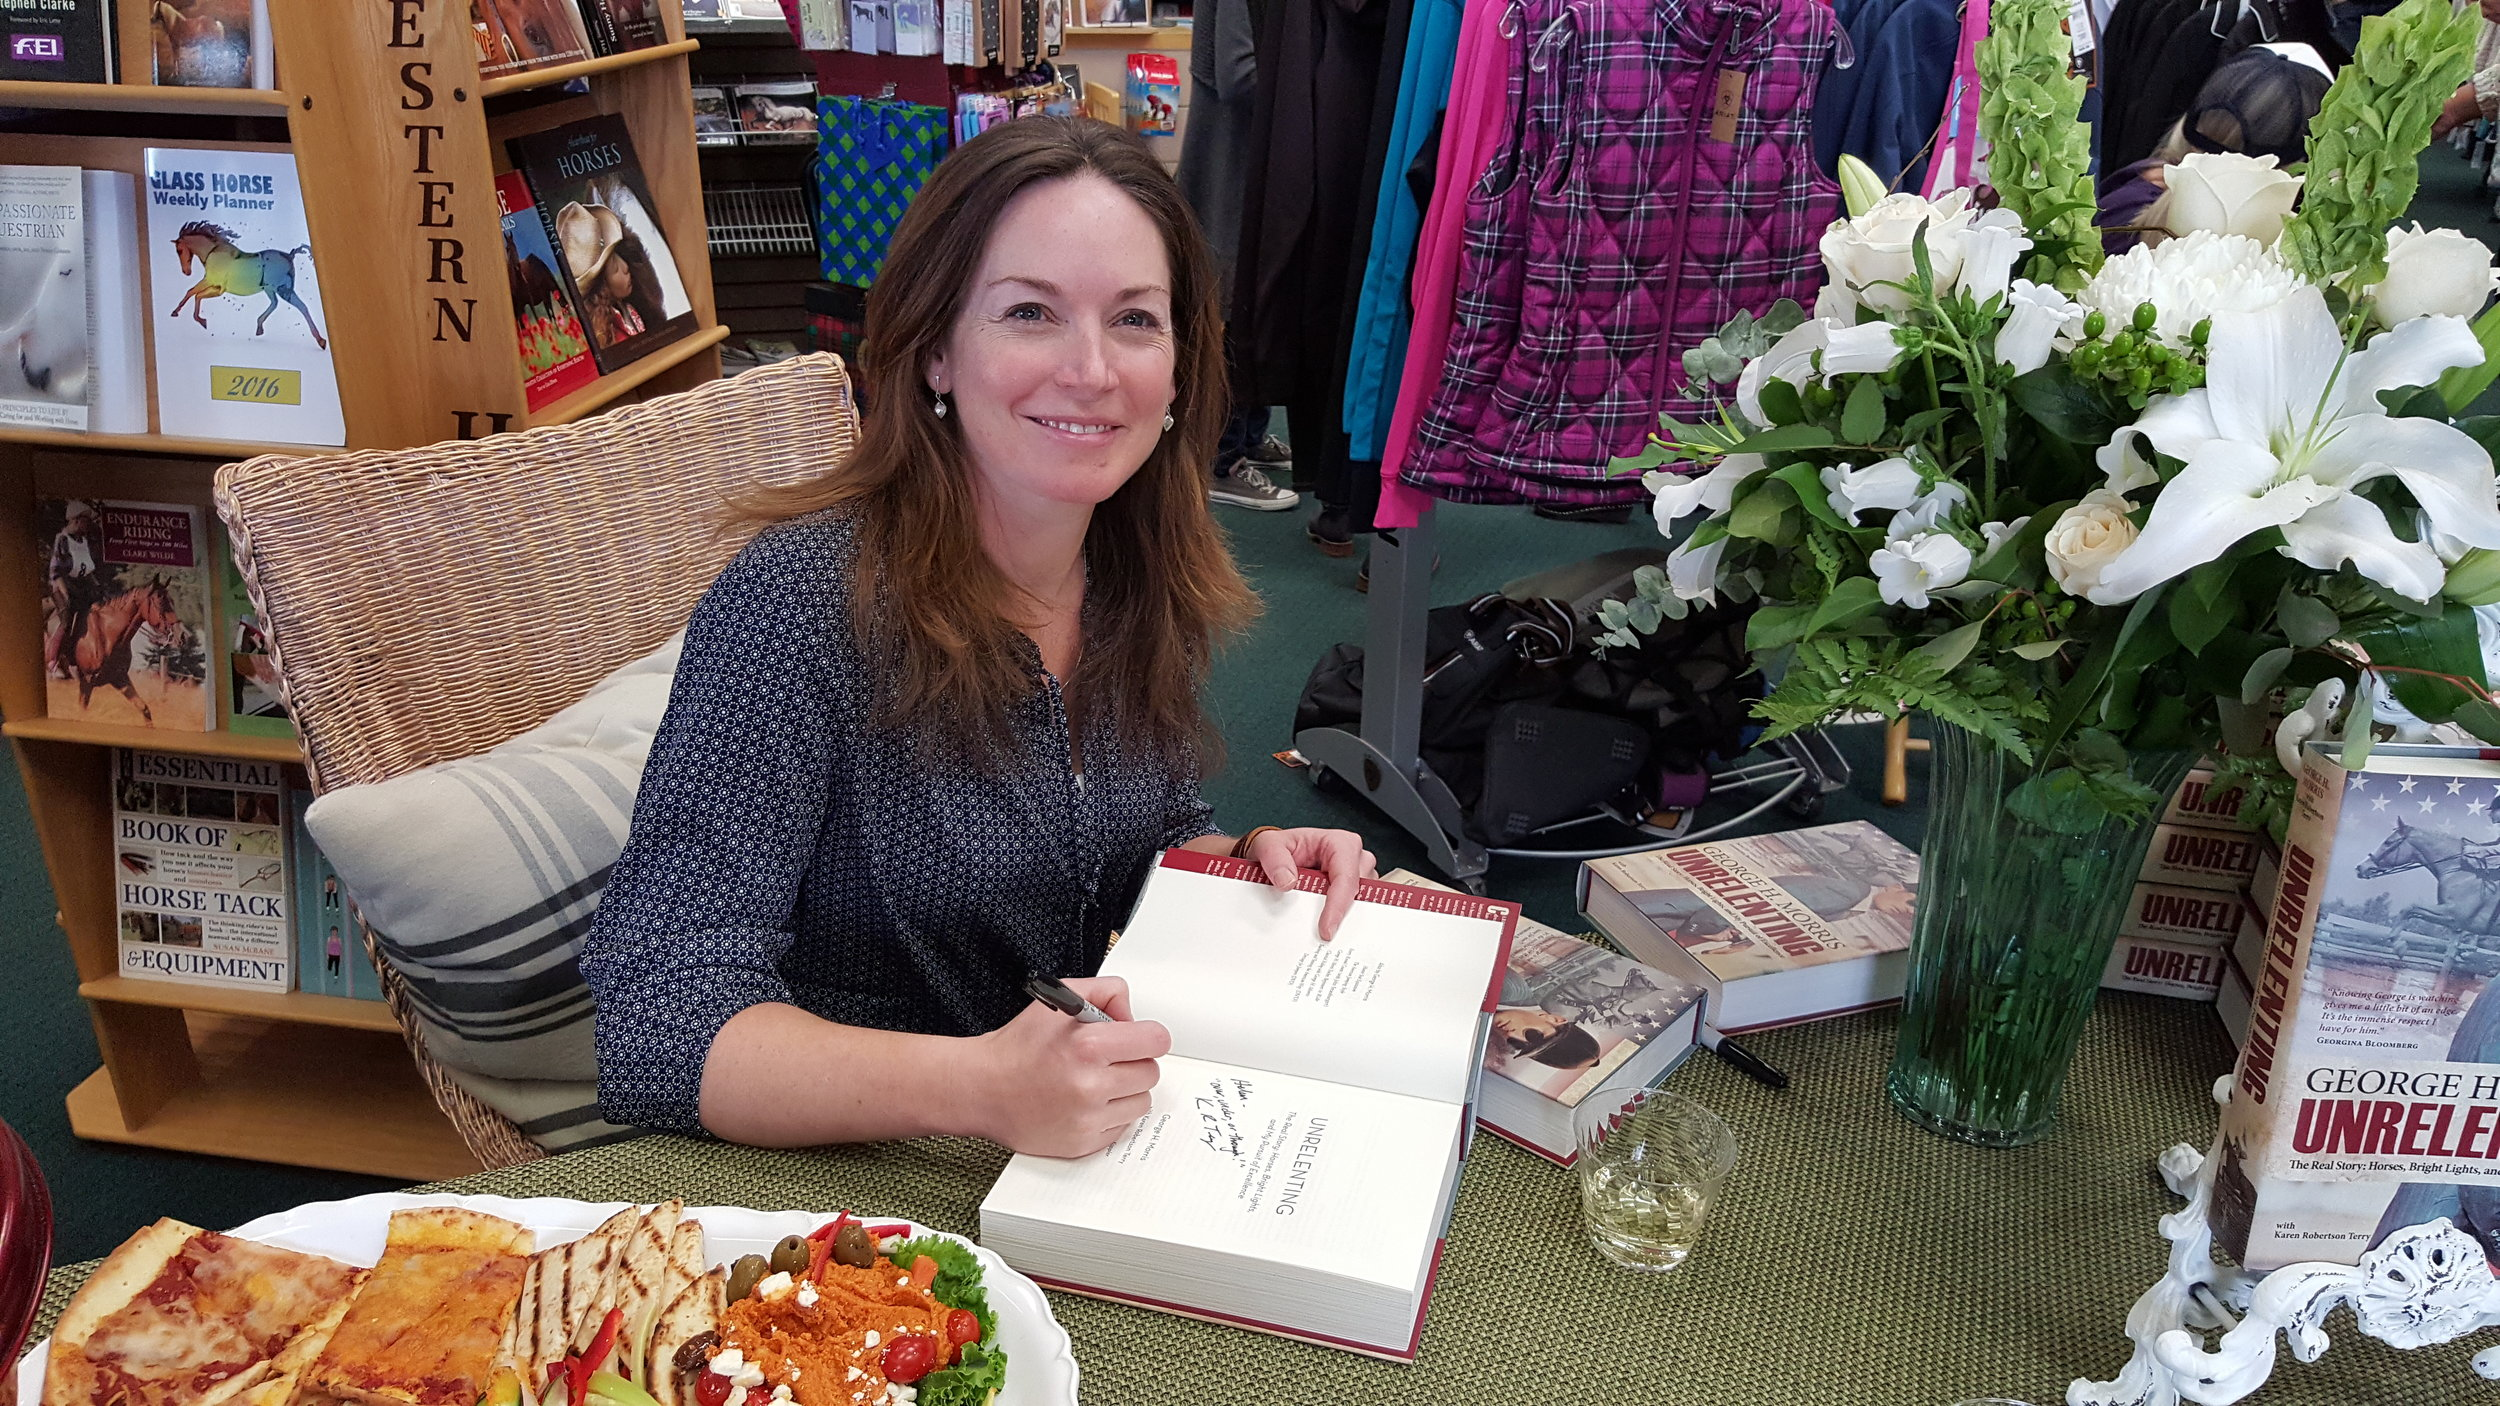 Karen Robertson Terry signing our copy of UNRELENTING.